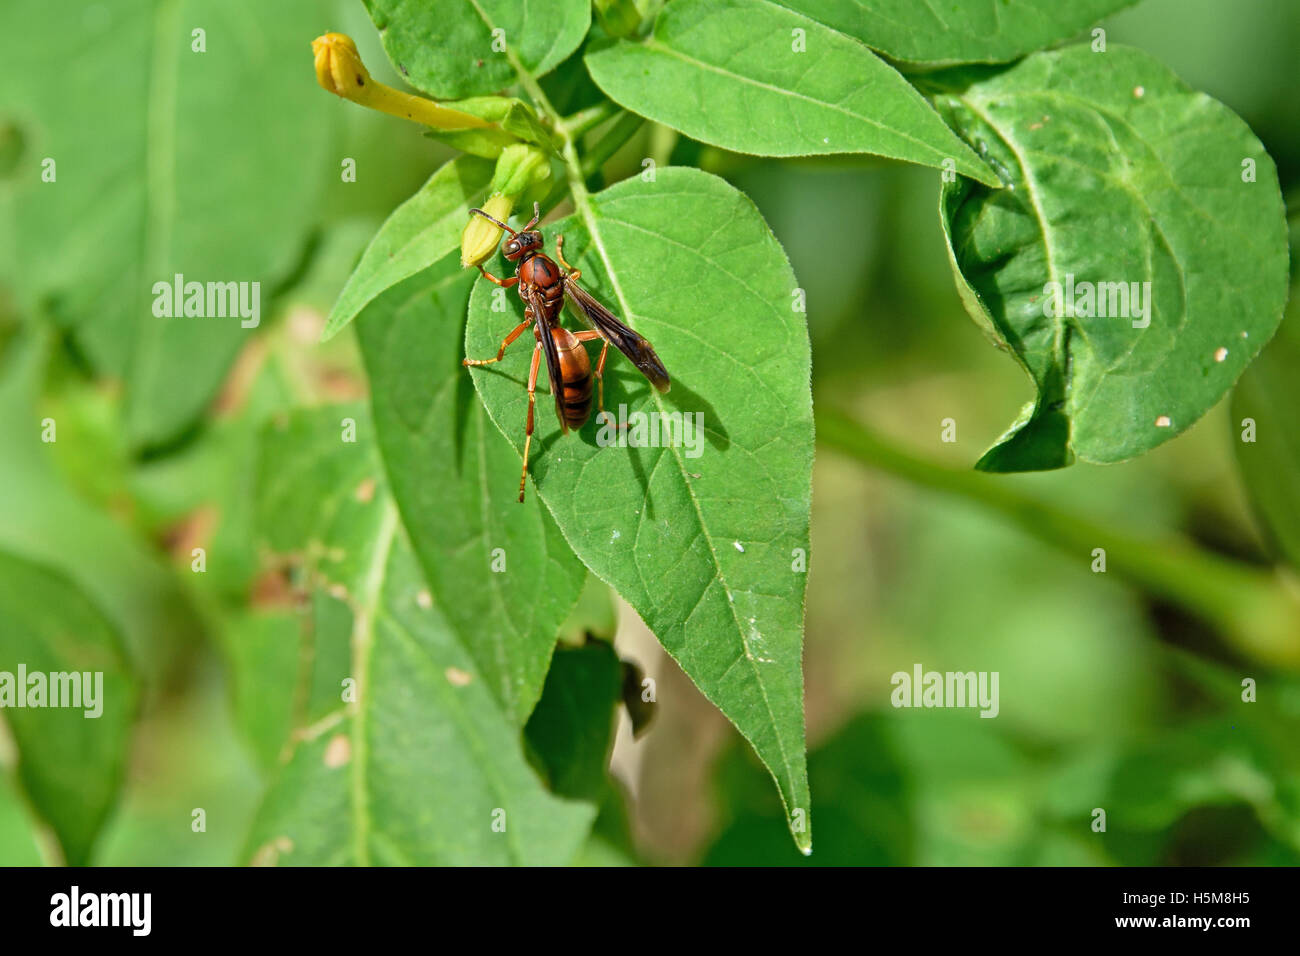 Paper Wasp Species Stock Photos Amp Paper Wasp Species Stock